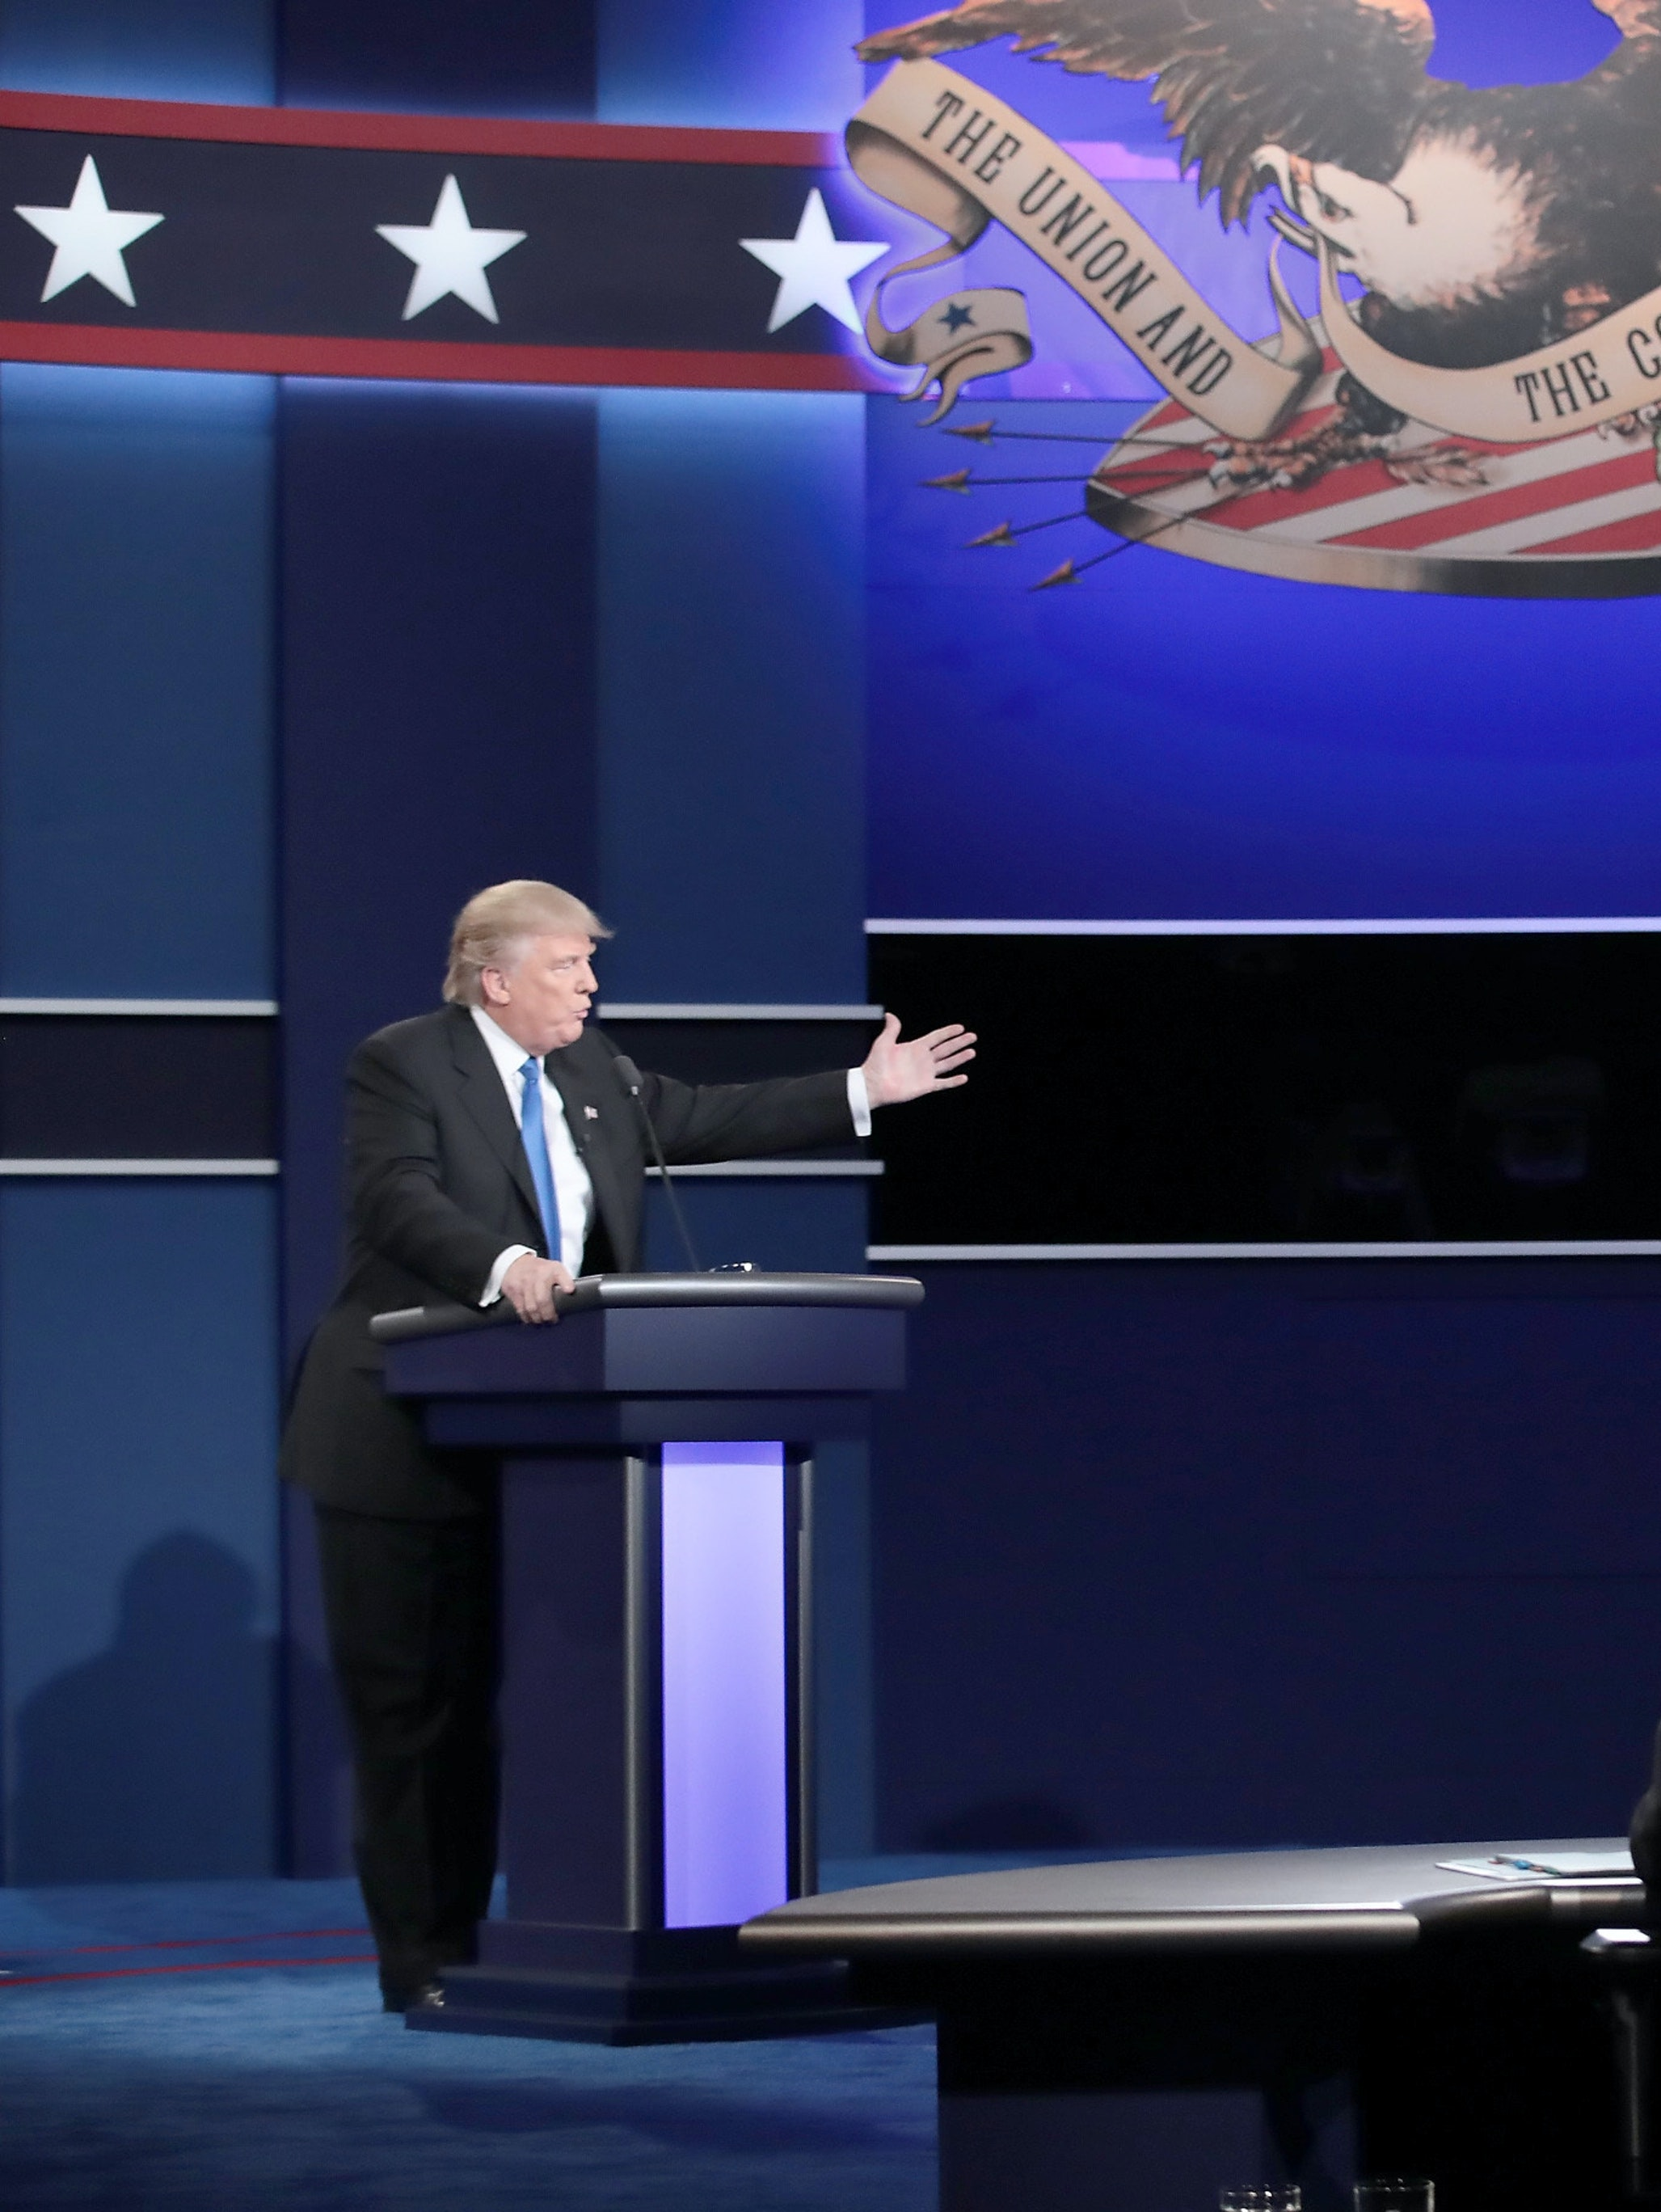 HEMPSTEAD, NY - SEPTEMBER 26:  Republican presidential nominee Donald Trump (L) speaks as Democratic presidential nominee Hillary Clinton (R) listens during the Presidential Debate at Hofstra University on September 26, 2016 in Hempstead, New York.  The first of four debates for the 2016 Election, three Presidential and one Vice Presidential, is moderated by NBC's Lester Holt.  (Photo by Drew Angerer/Getty Images)